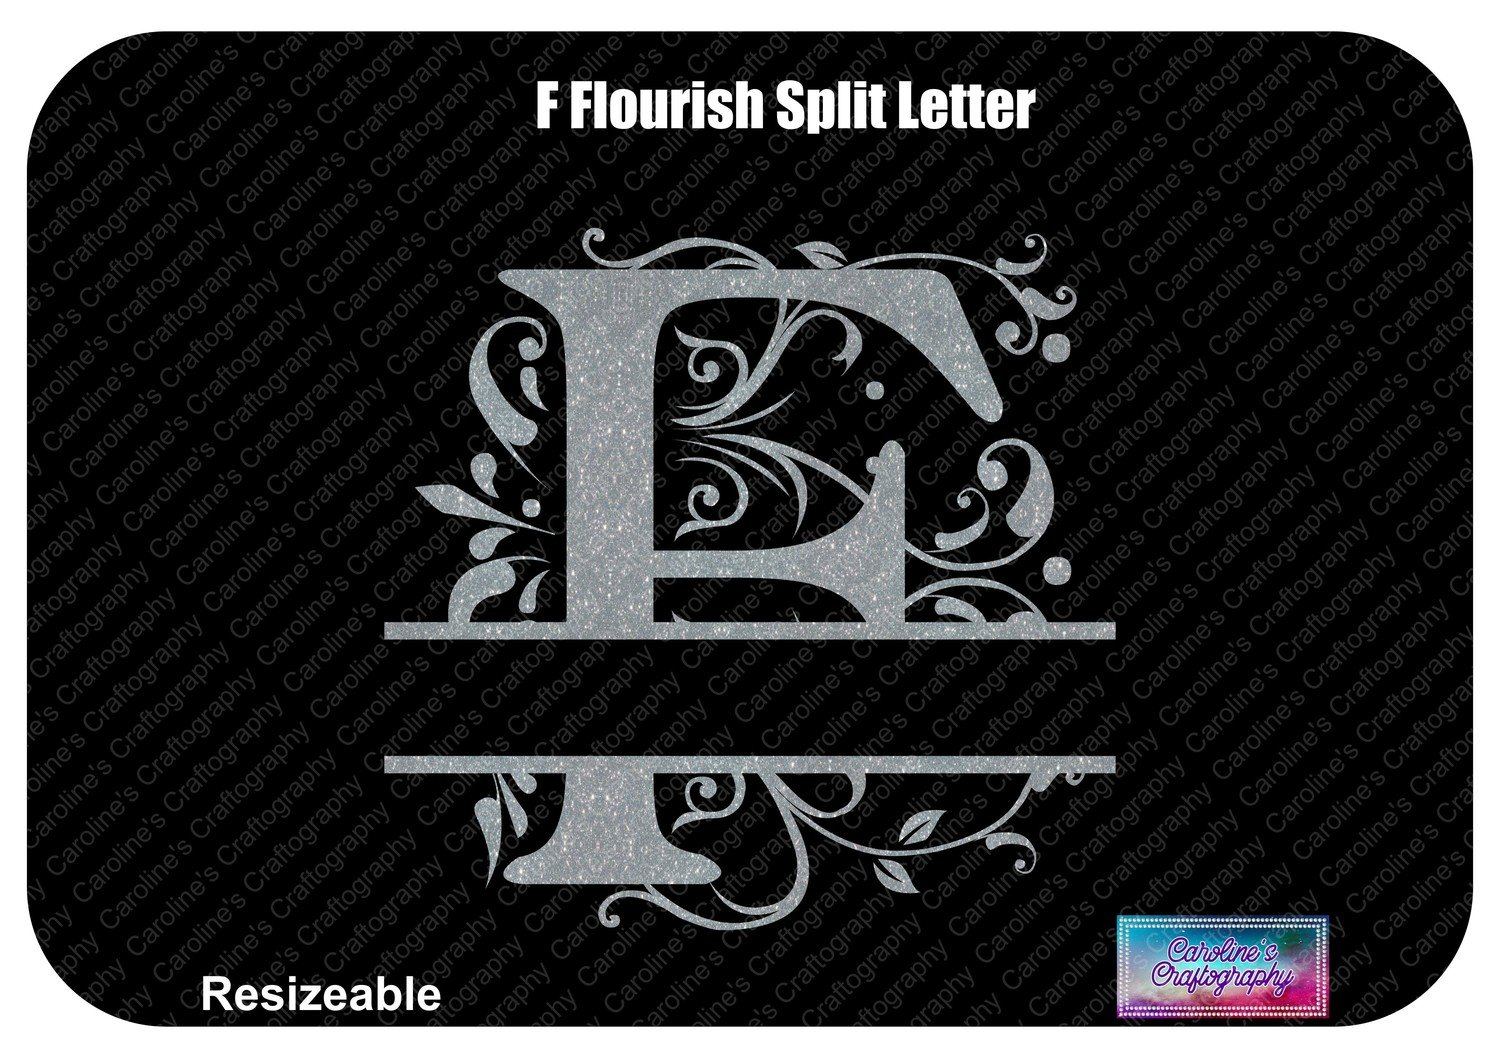 F Flourish Split Letter